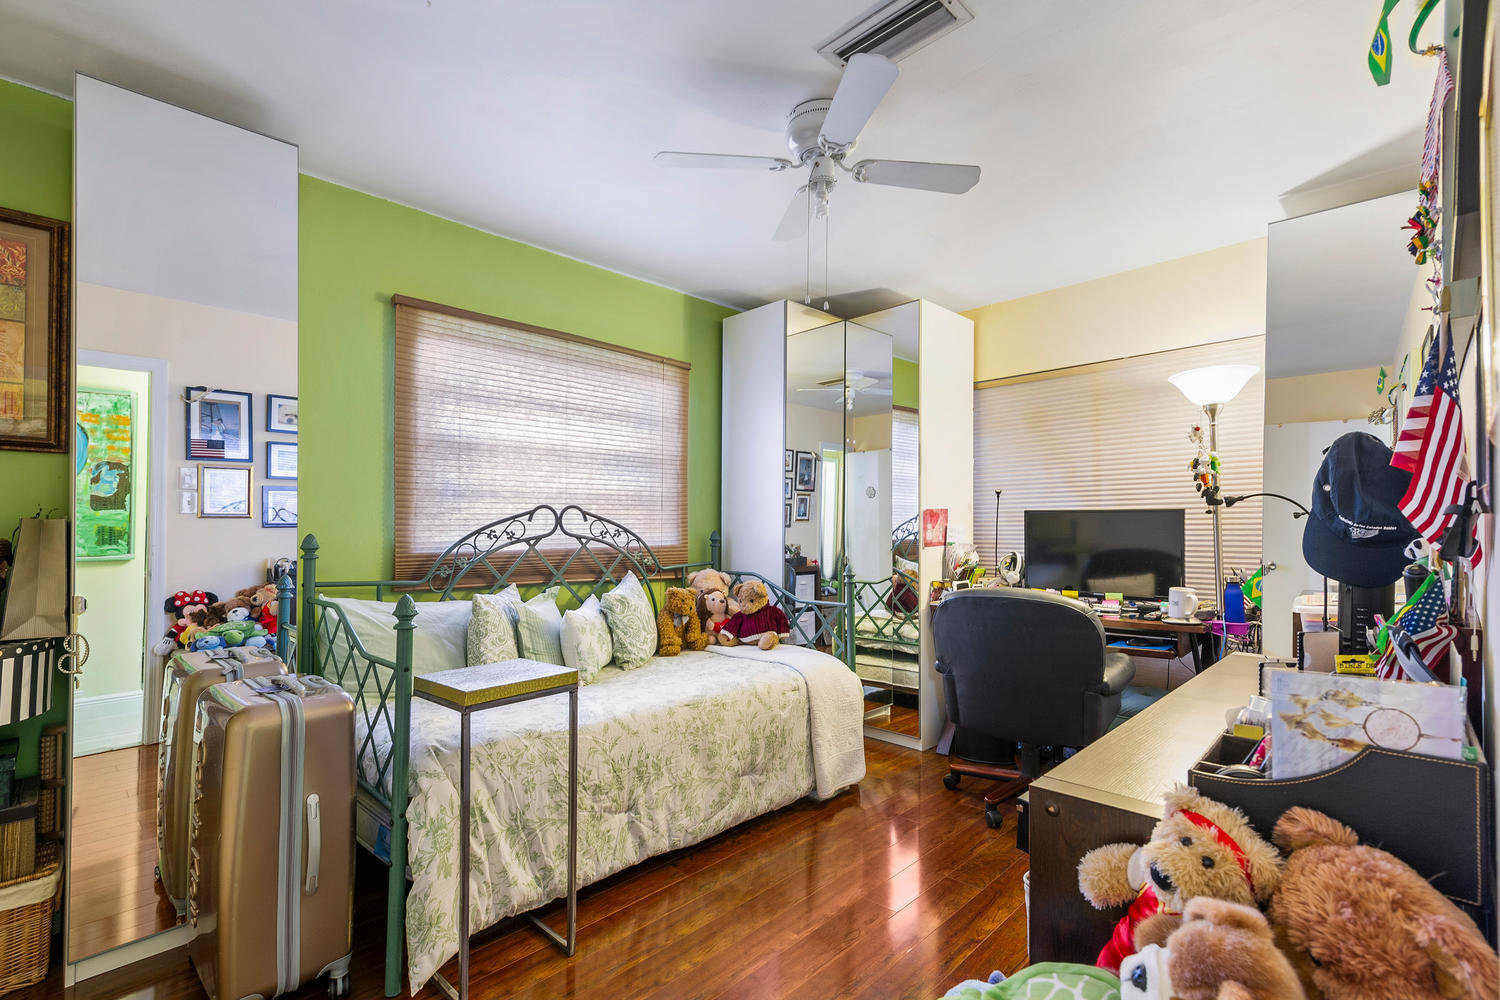 7204 NW 71st St-large-009-007-Bedroom-15